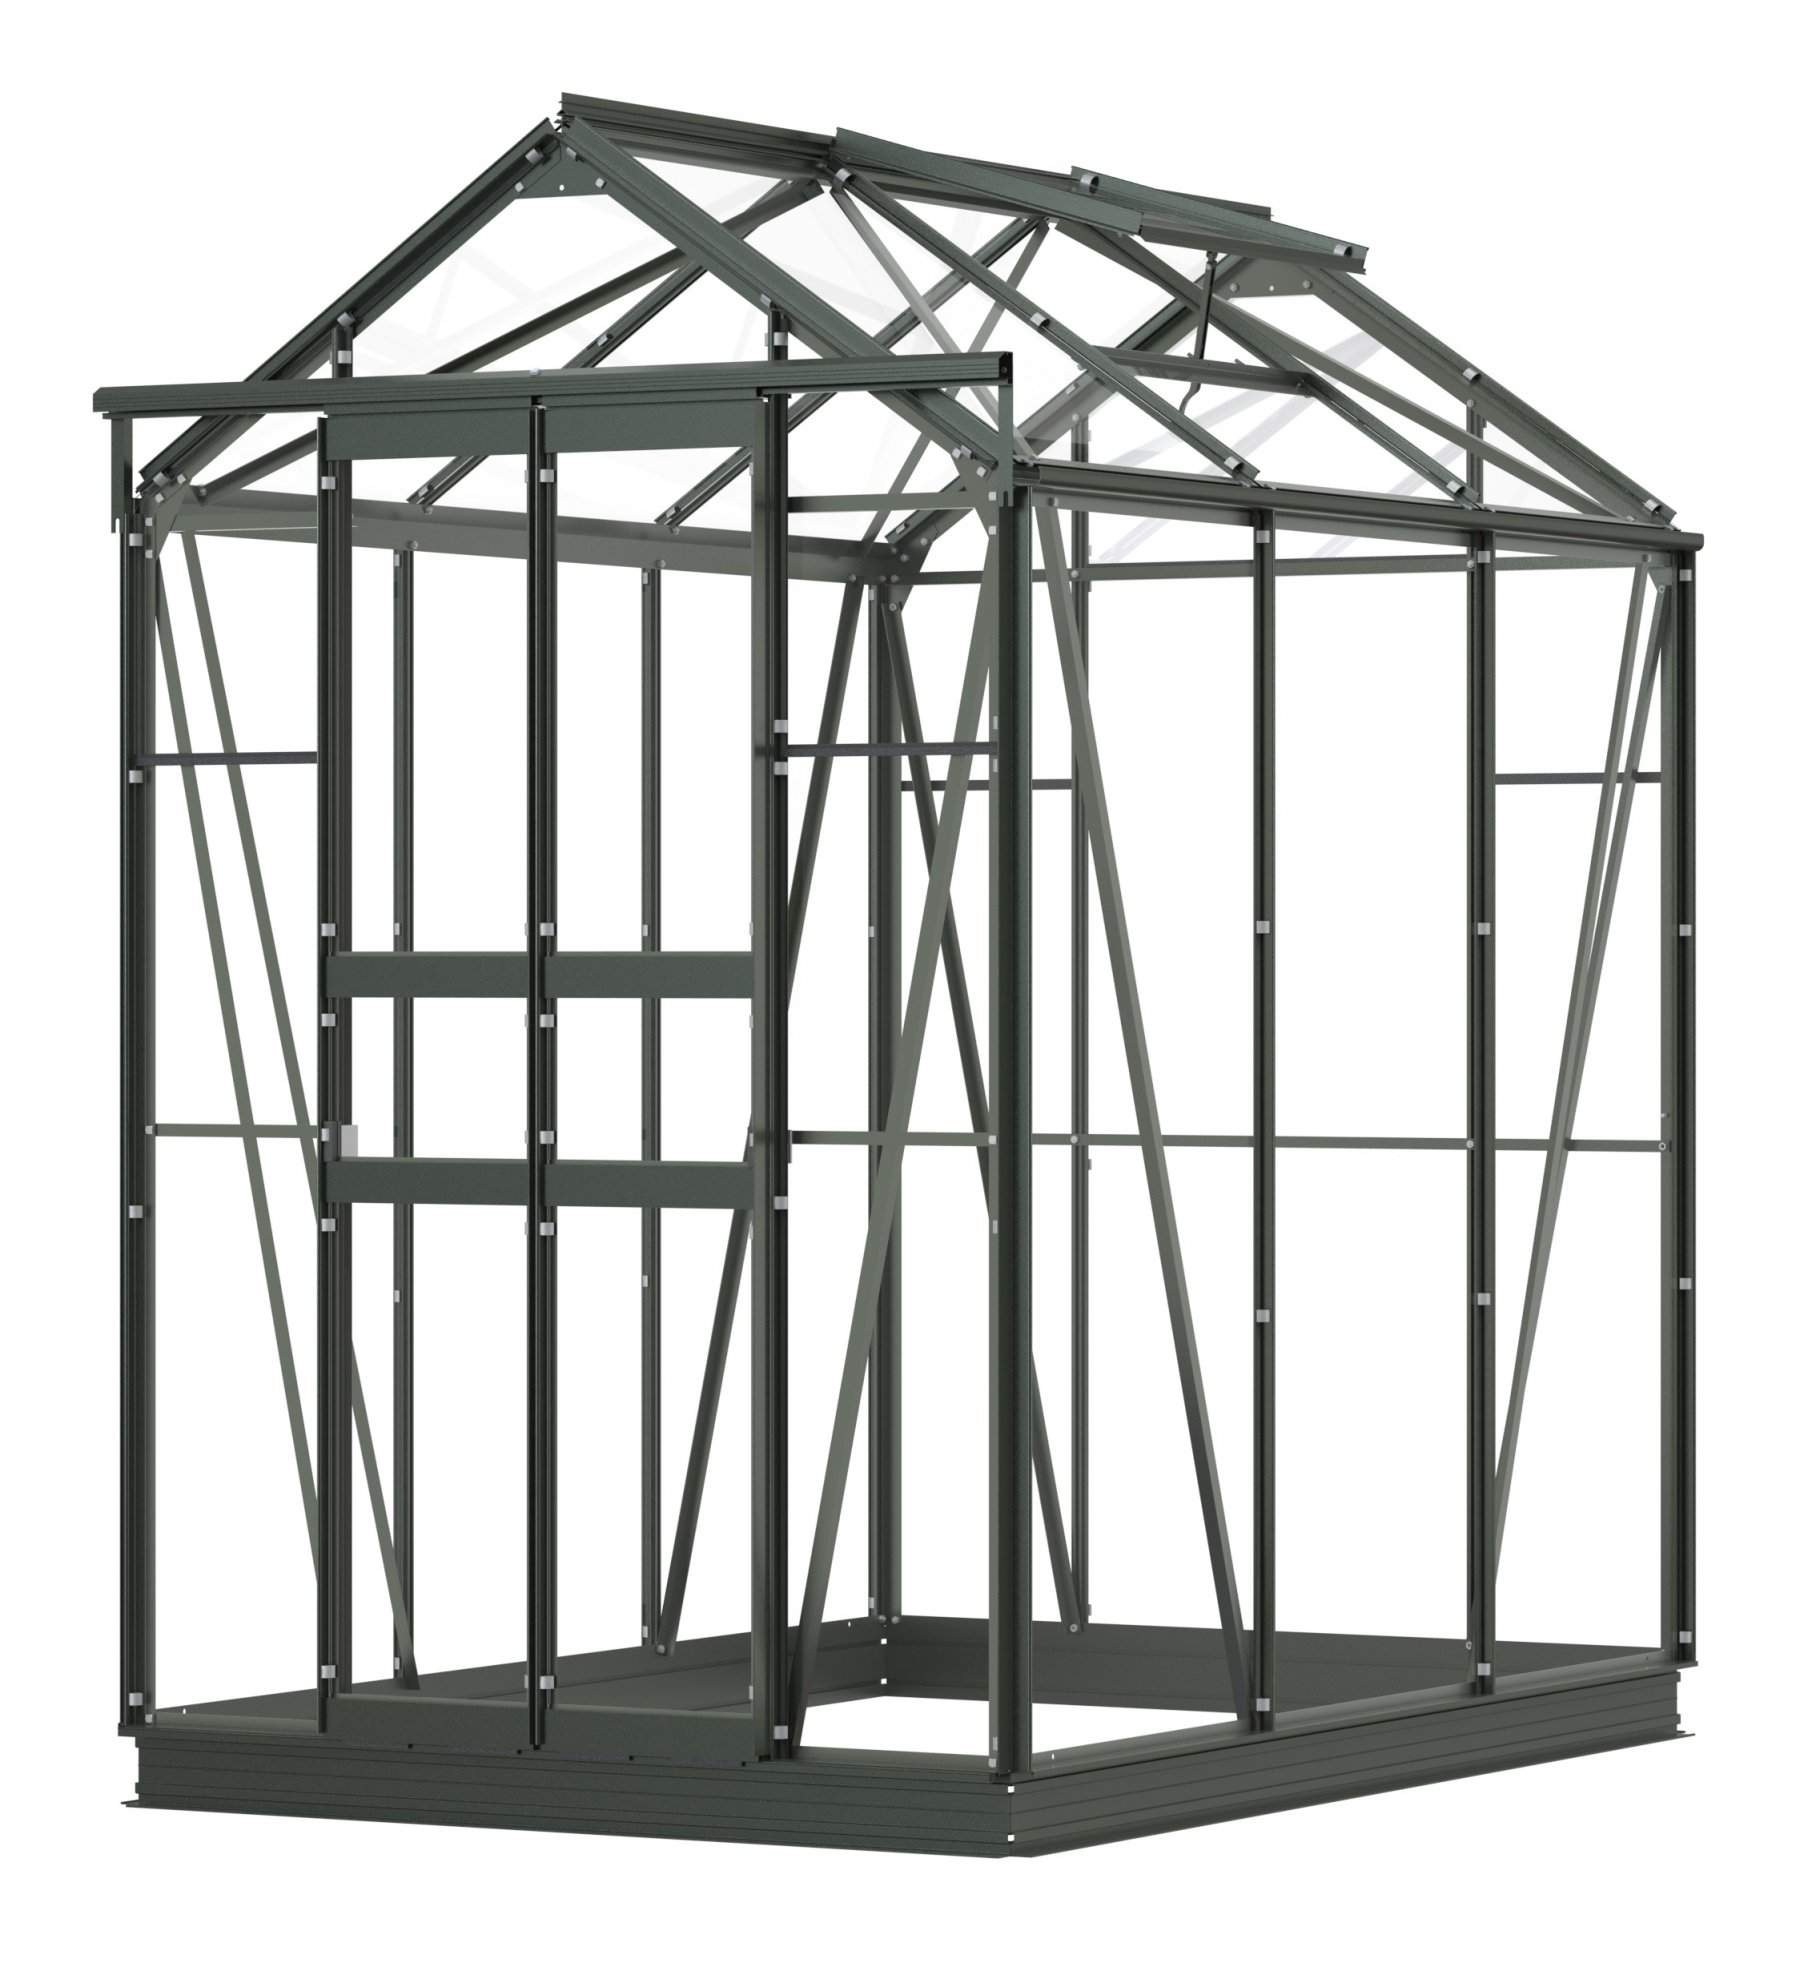 simplicity sandon old cottage green greenhouse 4ft2 wide 1295mm x 6ft3 long 1910mm